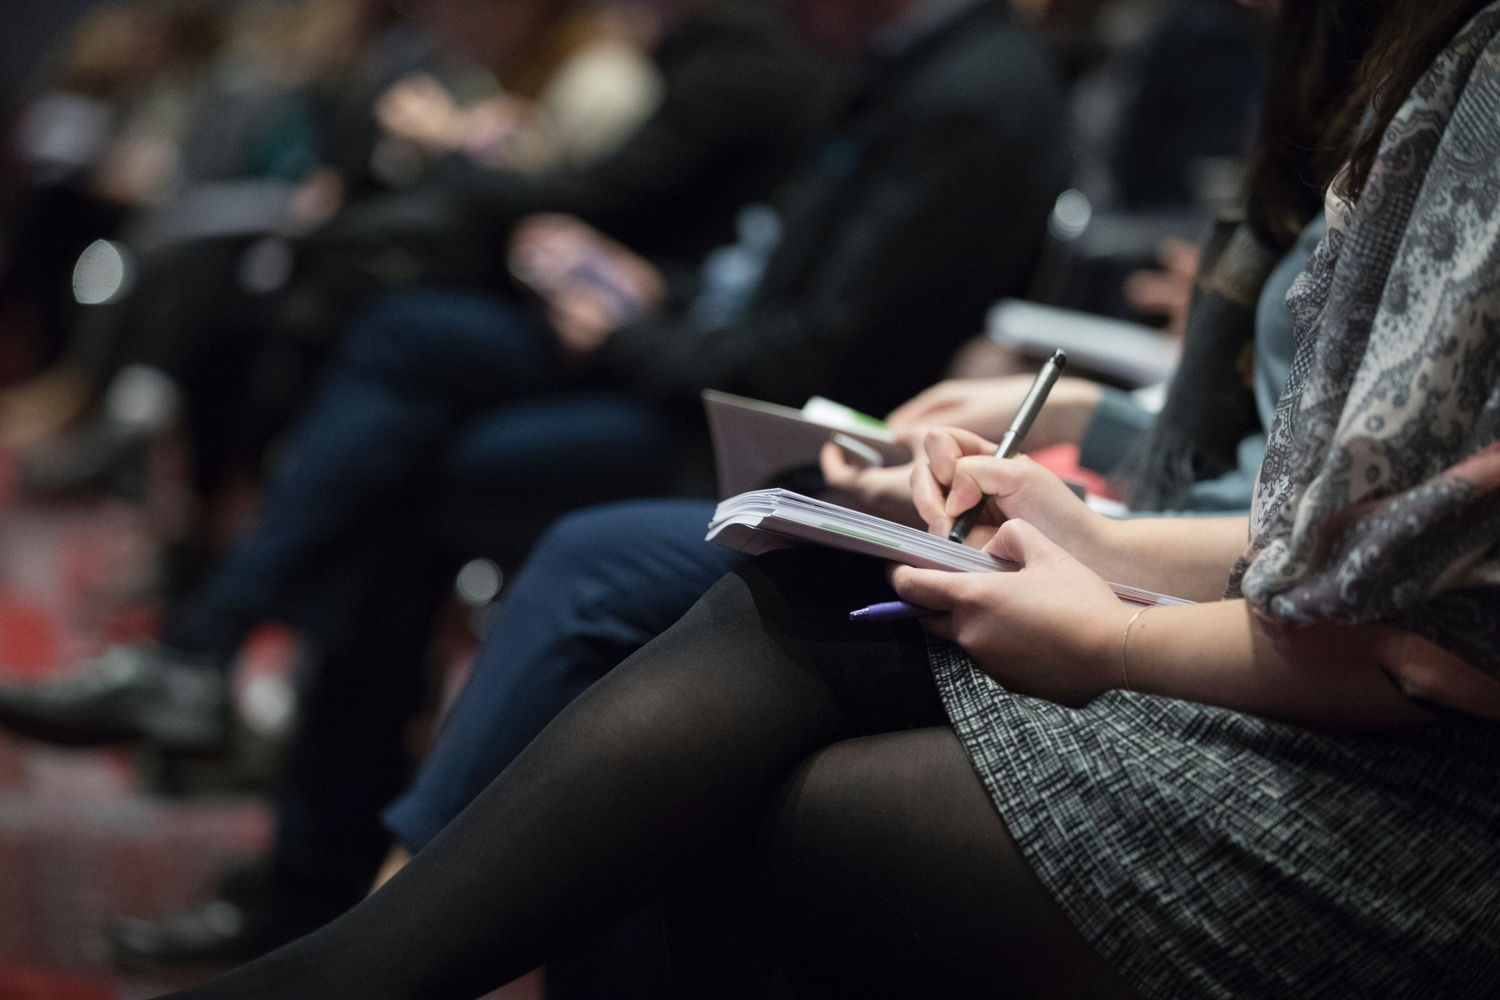 Women taking notes in a conference session